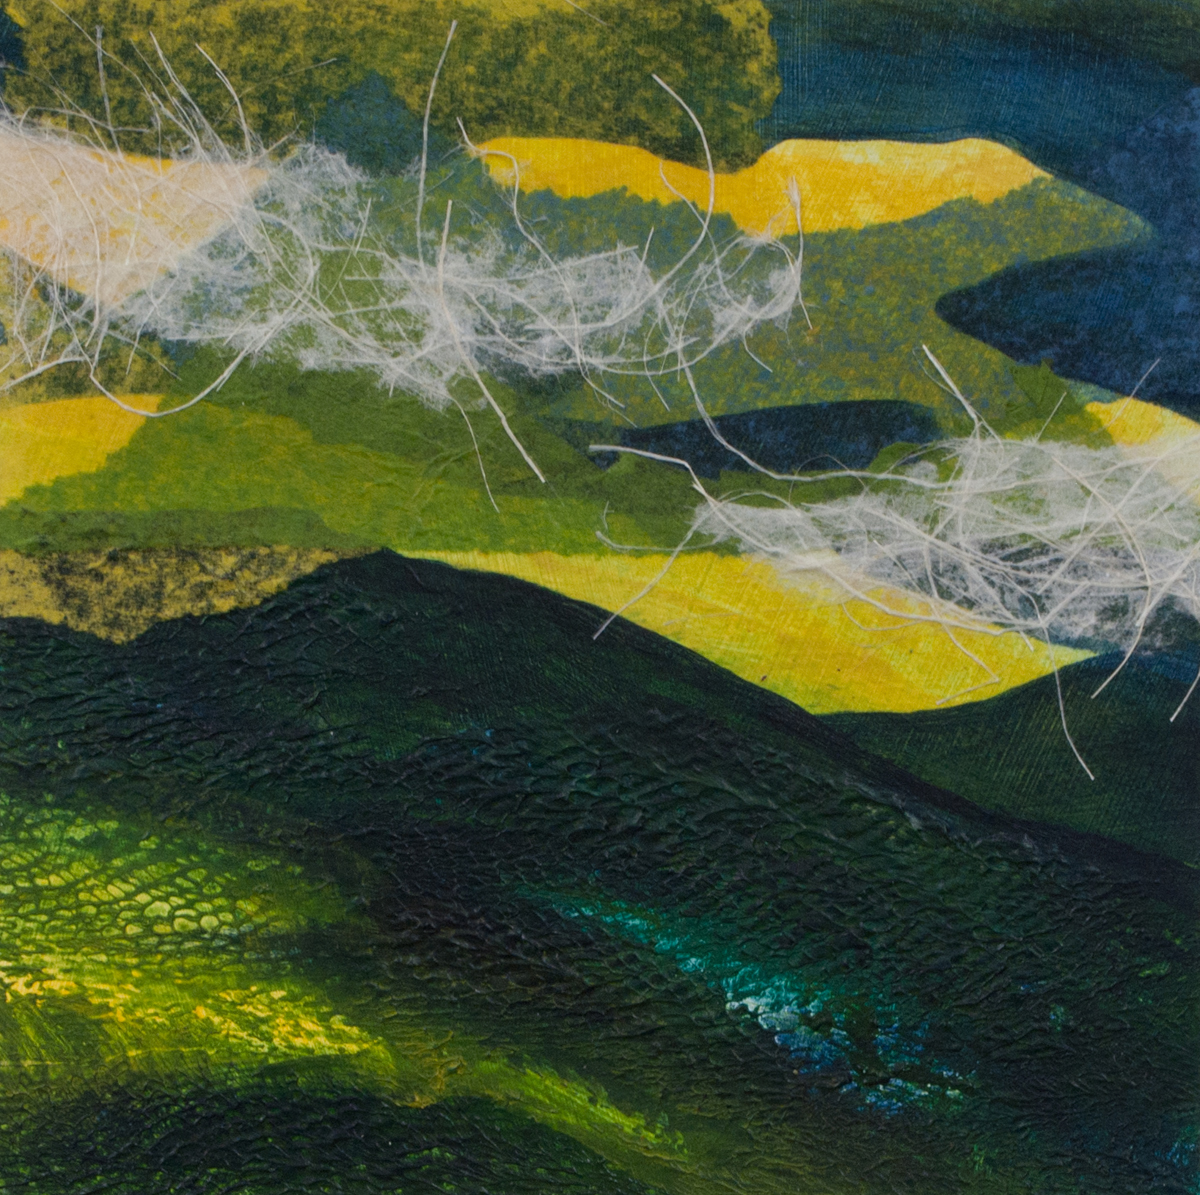 monotype, abstract, collage, mixed media, nature, michelle lindblom, contemporary, landscape